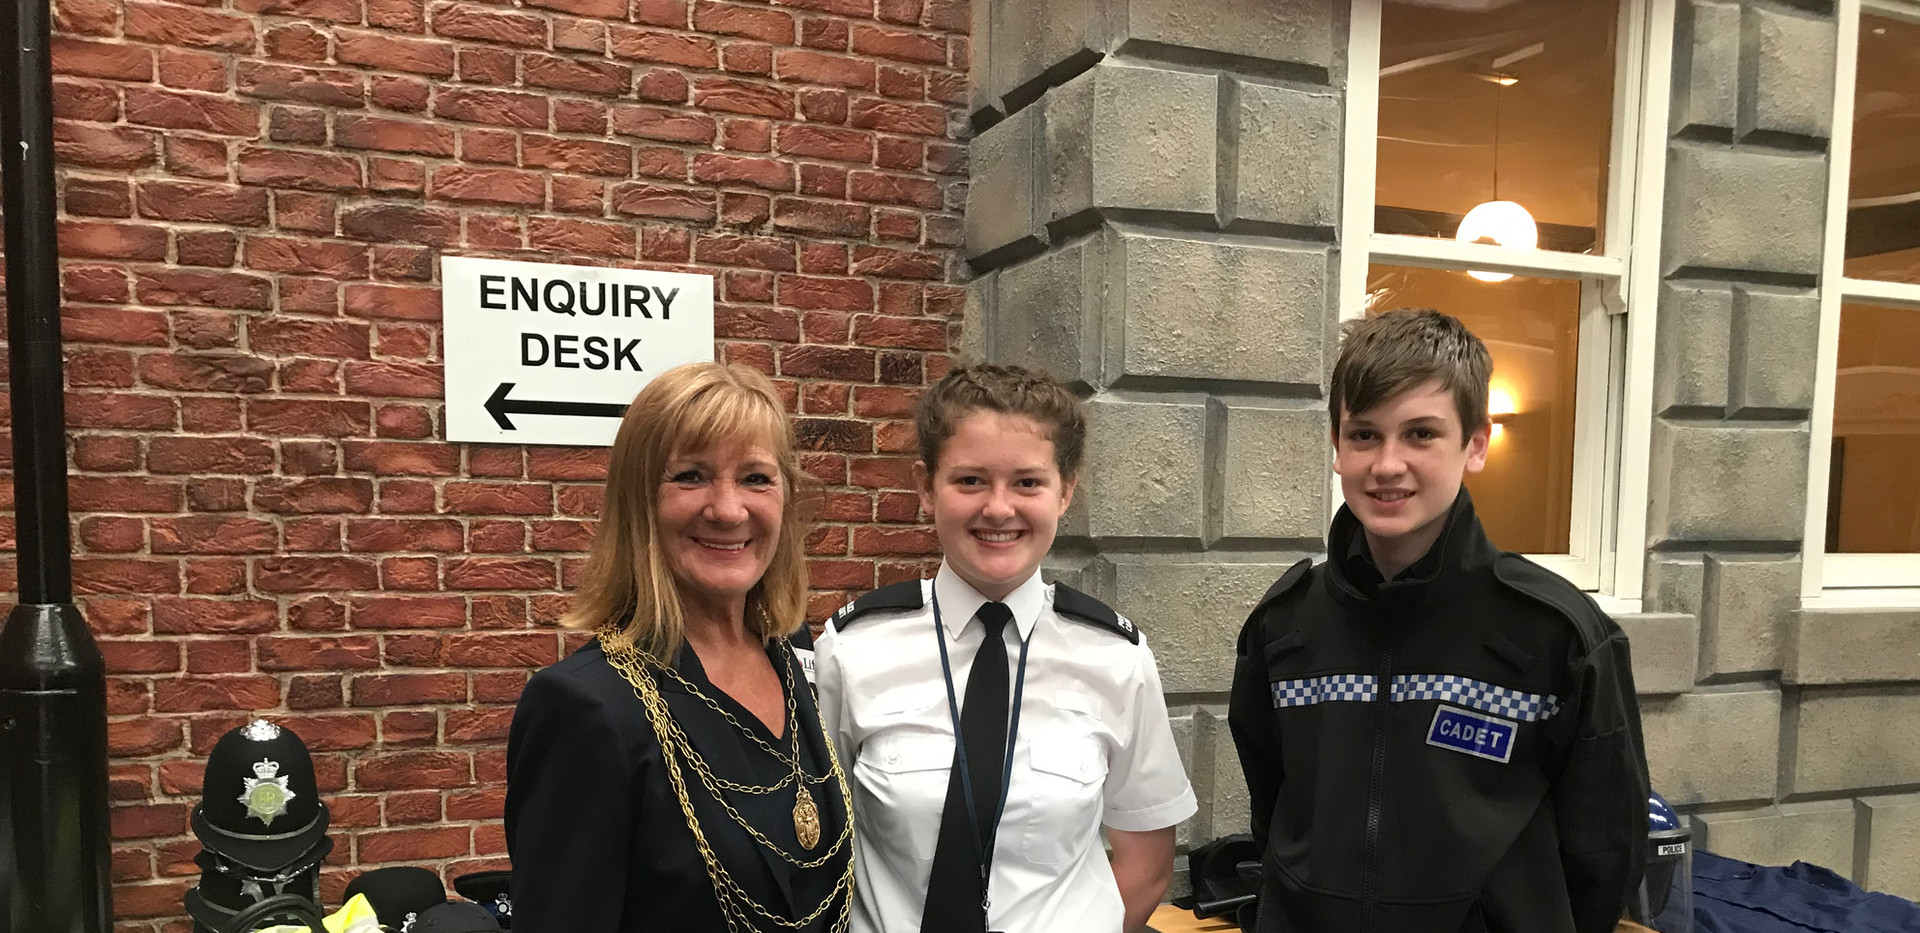 The Mayoress with the Cadets